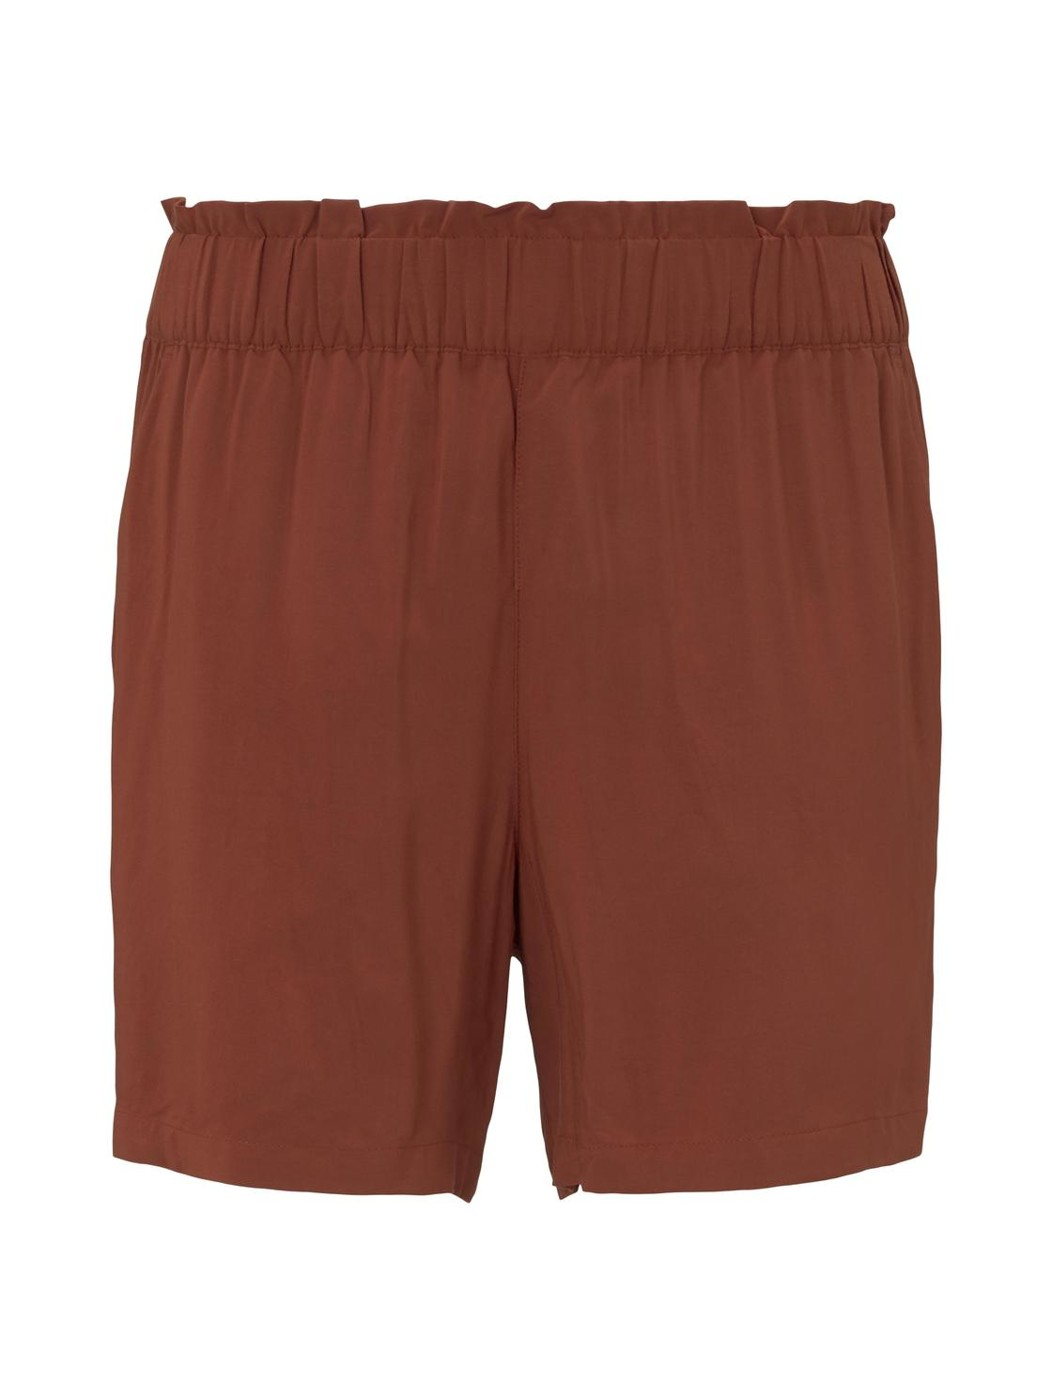 Relaxed shorts - Damen